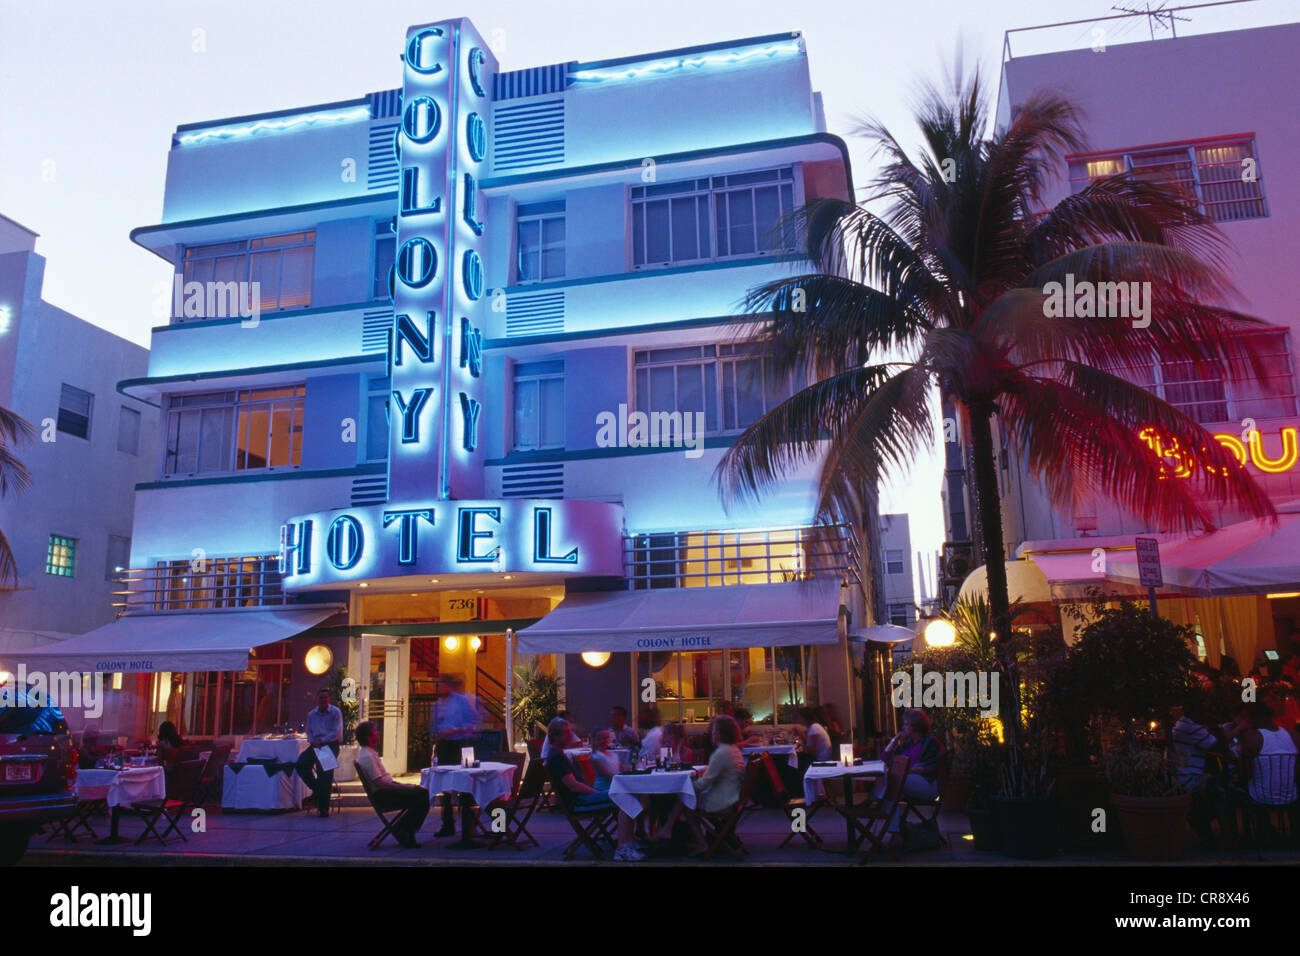 Colony Hotel on Ocean Drive, Miami Beach, Miami, Florida, USA - Stock Image